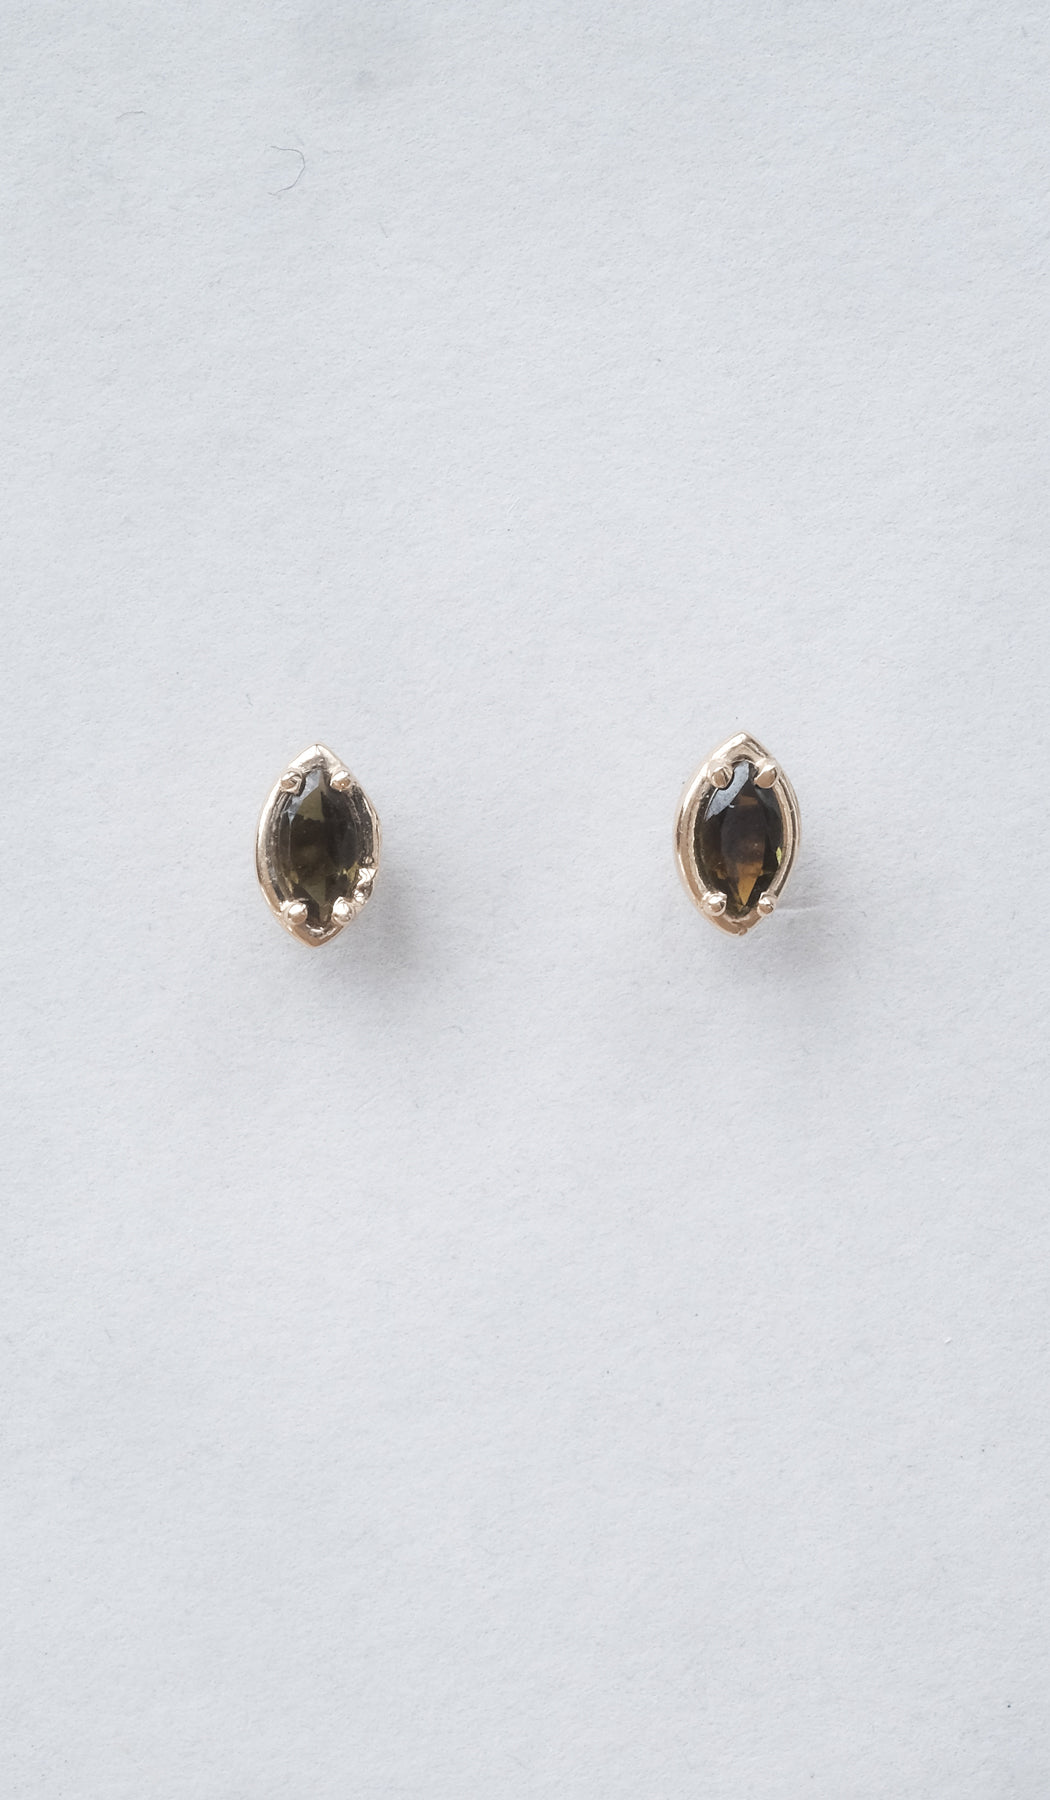 Kathryn Bentley Marquise Stud Earrings: Amber Tourmaline, Jewelry, Kathryn Bentley, SPARTAN SHOP